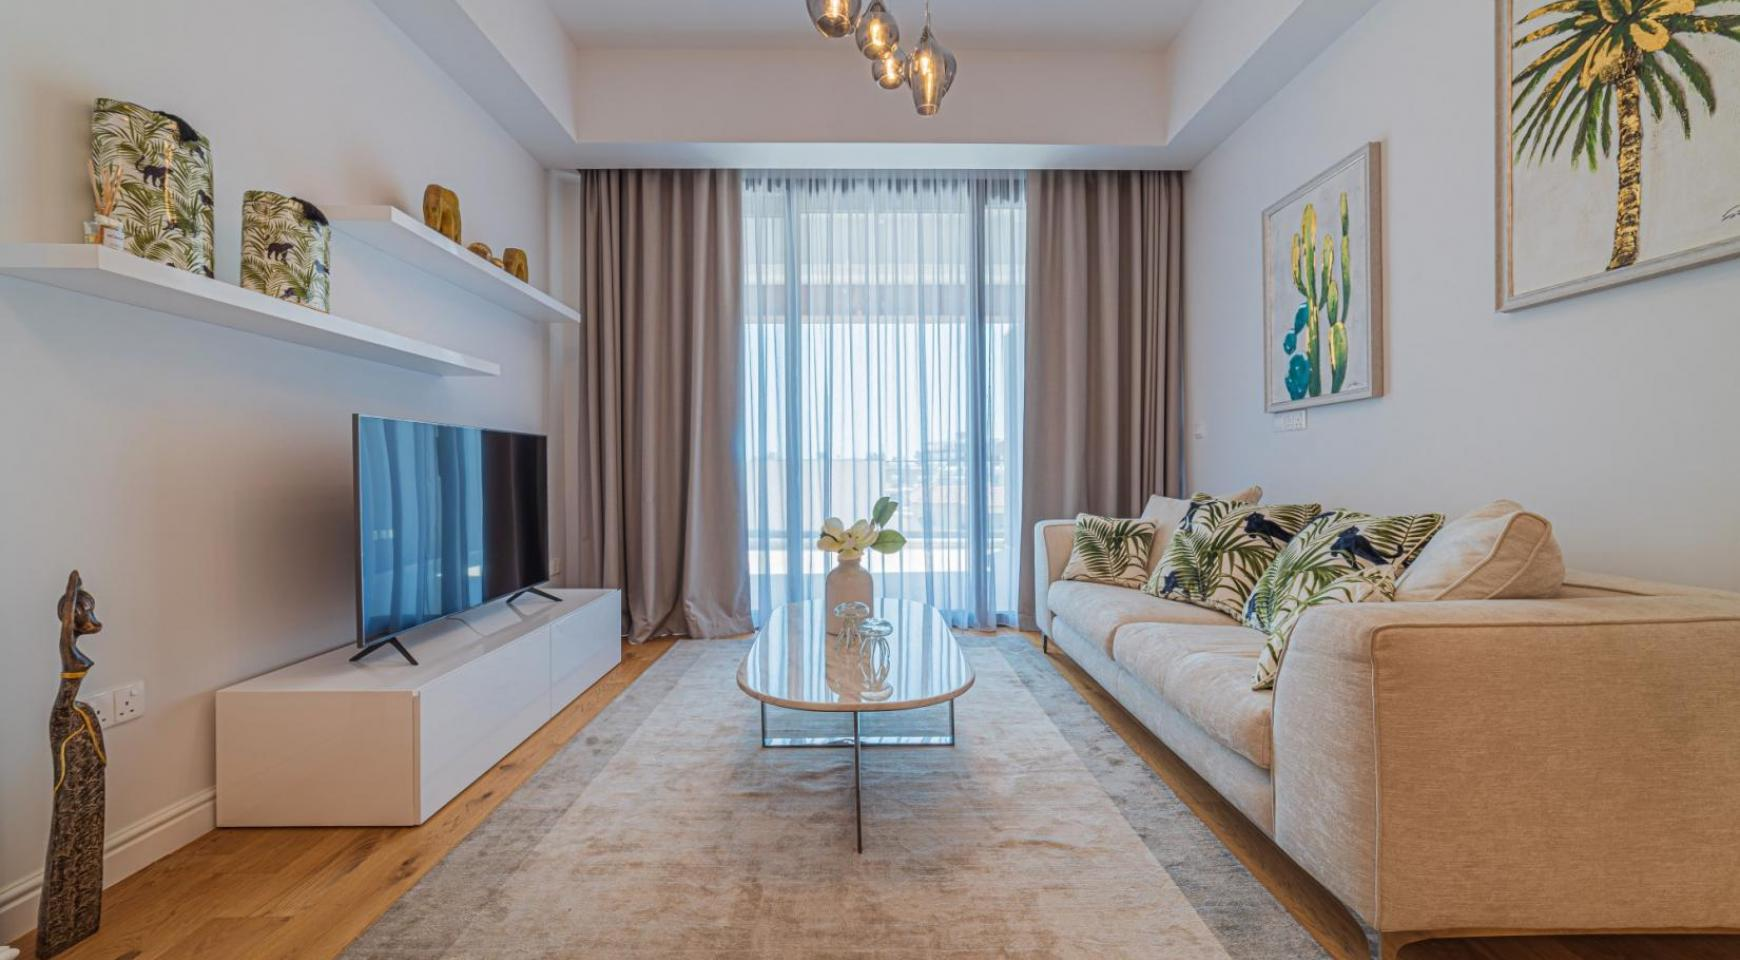 Hortensia Residence, Apt. 301. 2 Bedroom Apartment within a New Complex near the Sea  - 49